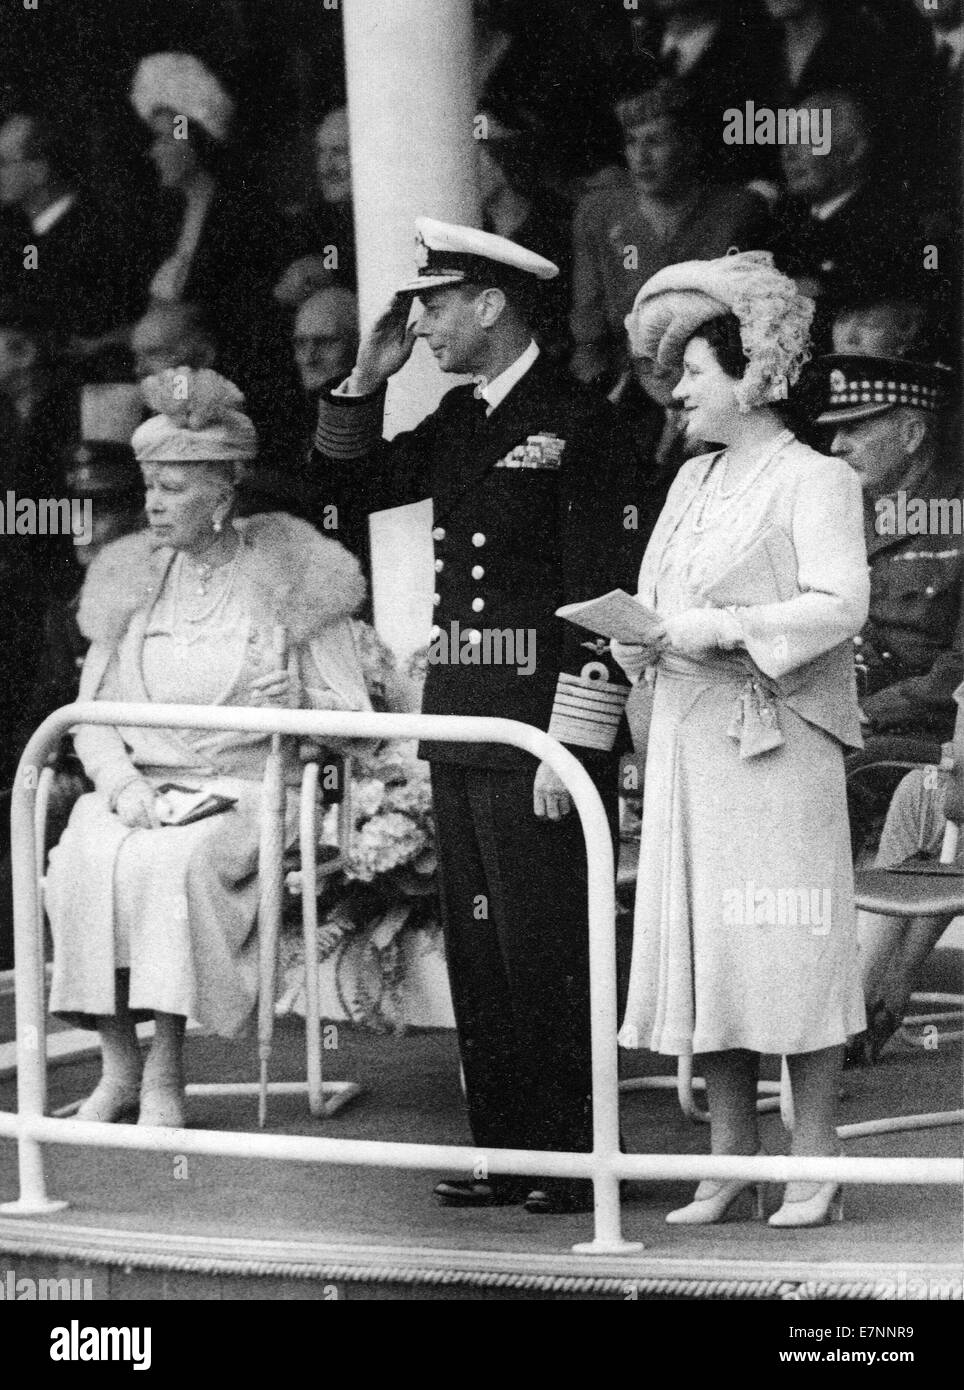 Queen Mary, King George, Queen Elizabeth take the salute at the victory parade at the end of WW11 - Stock Image